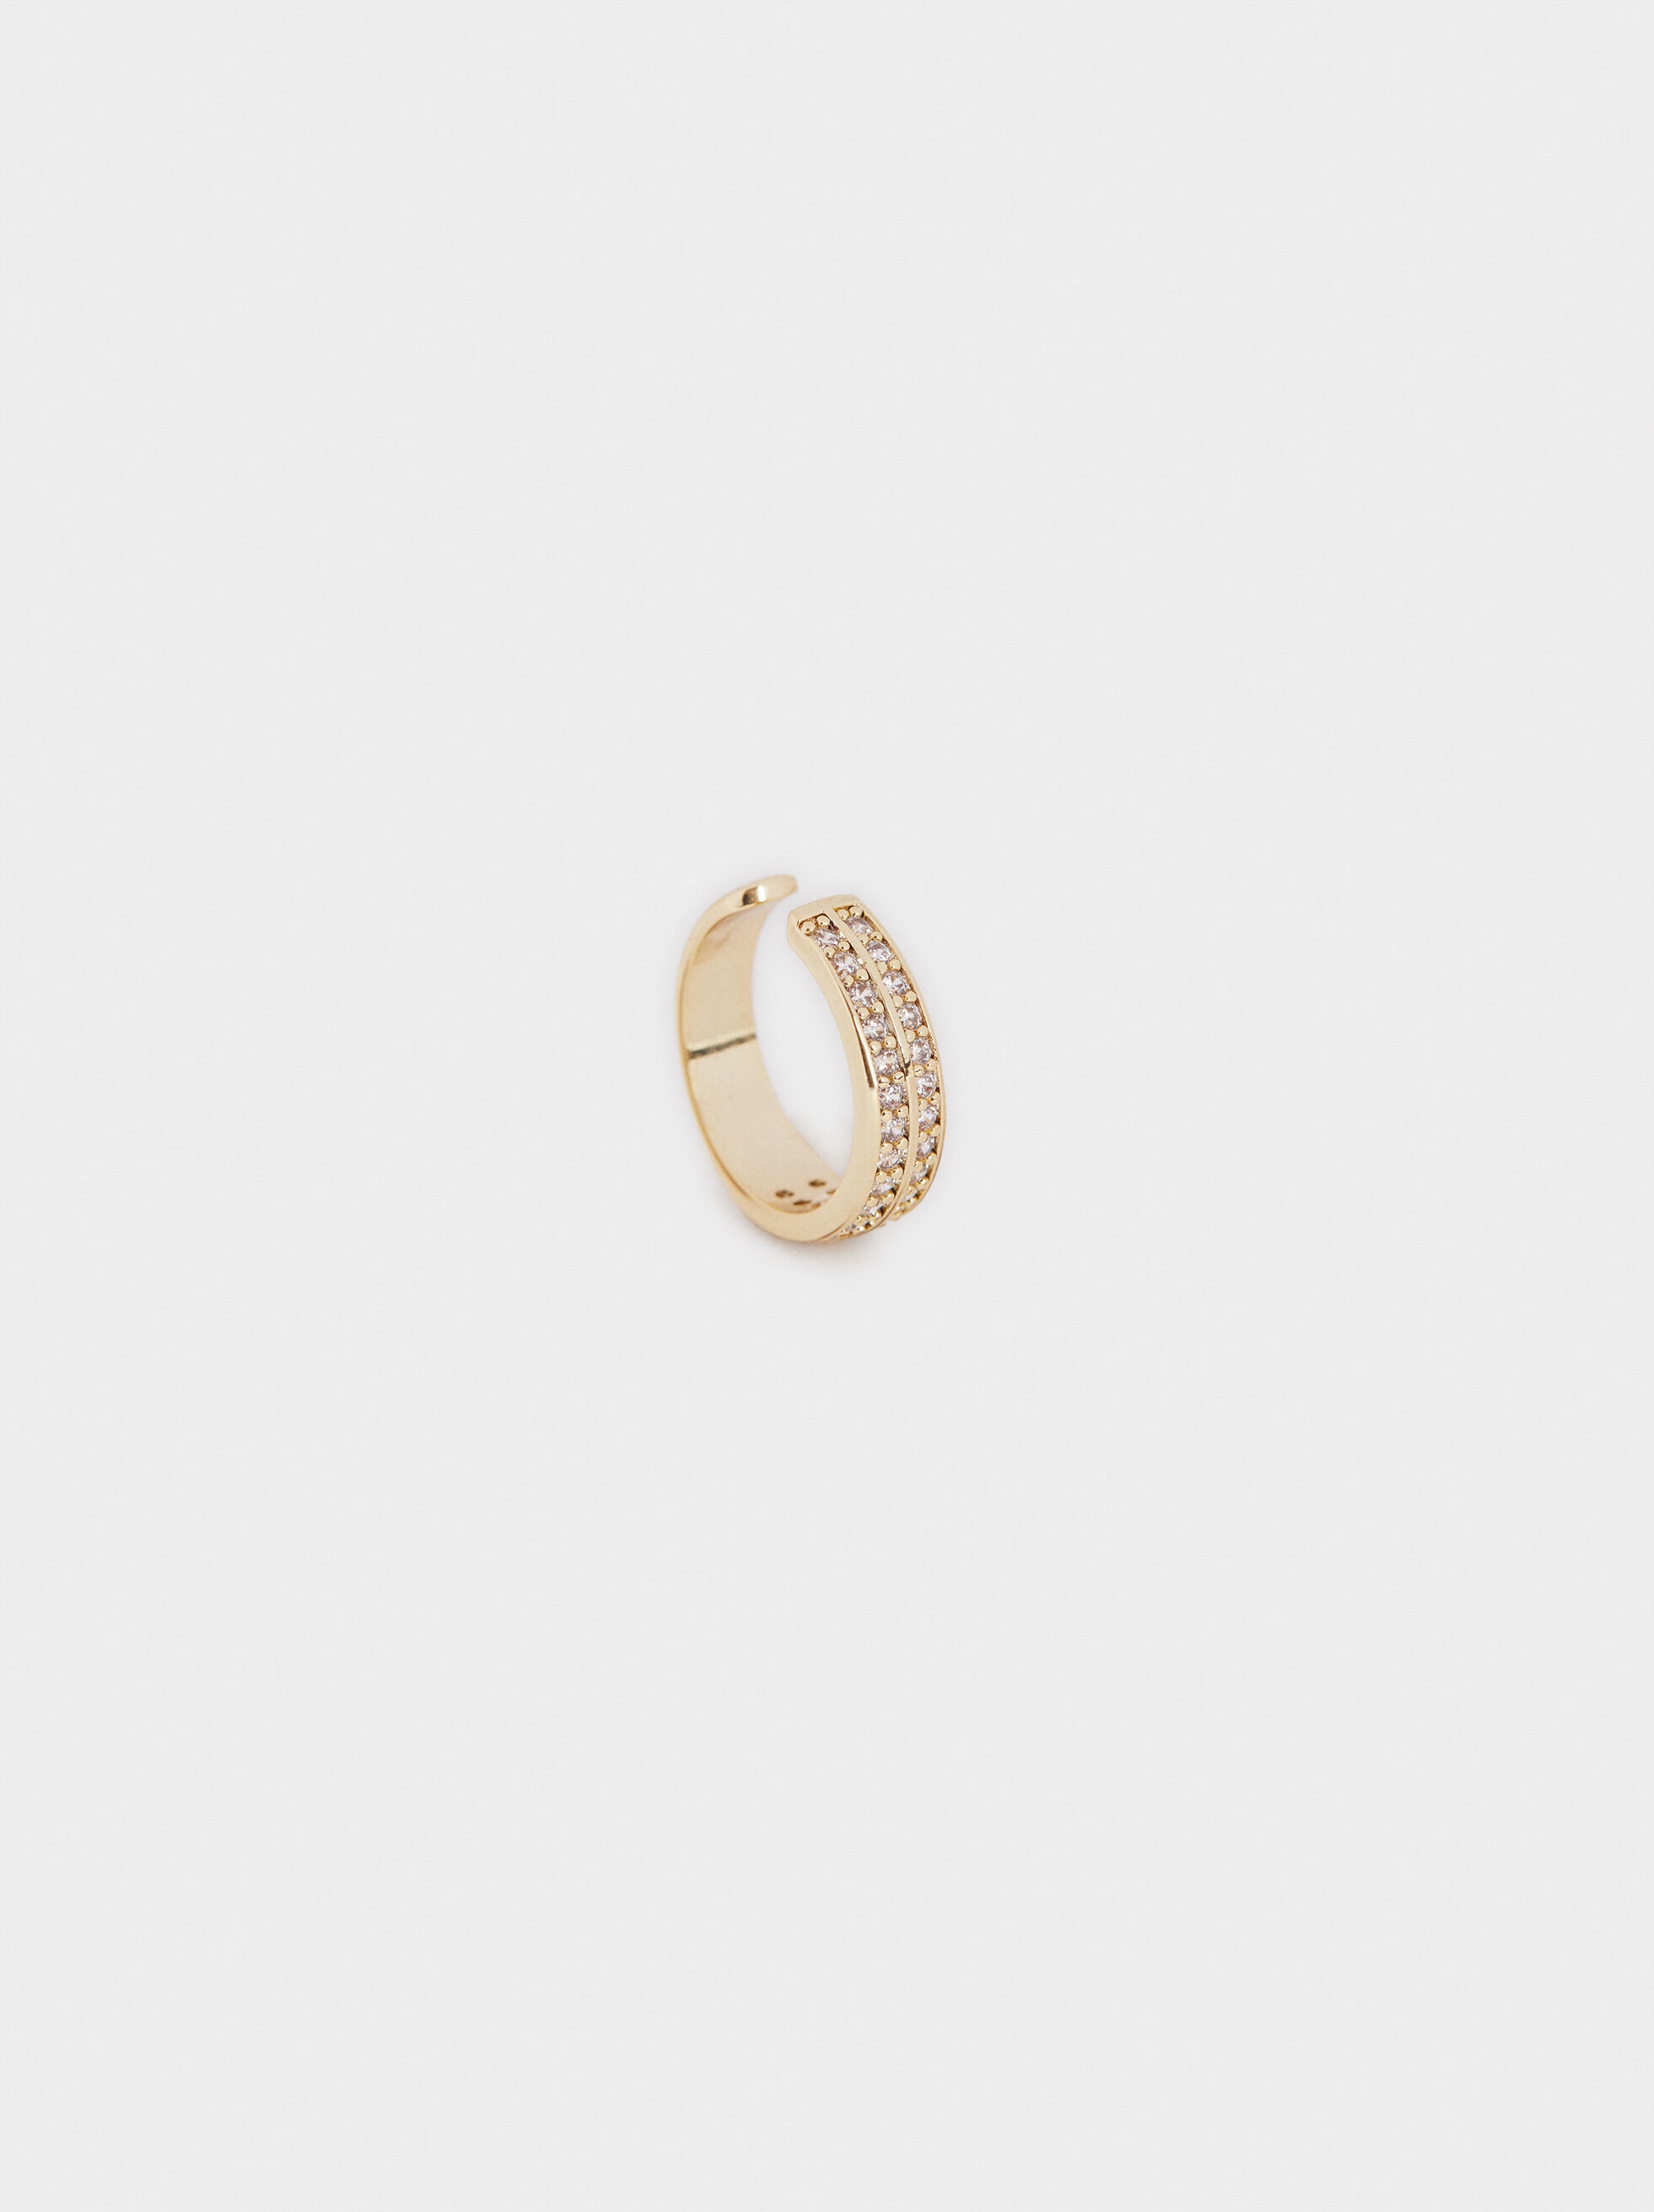 Small Golden Earcuffs With Crystals, Golden, hi-res